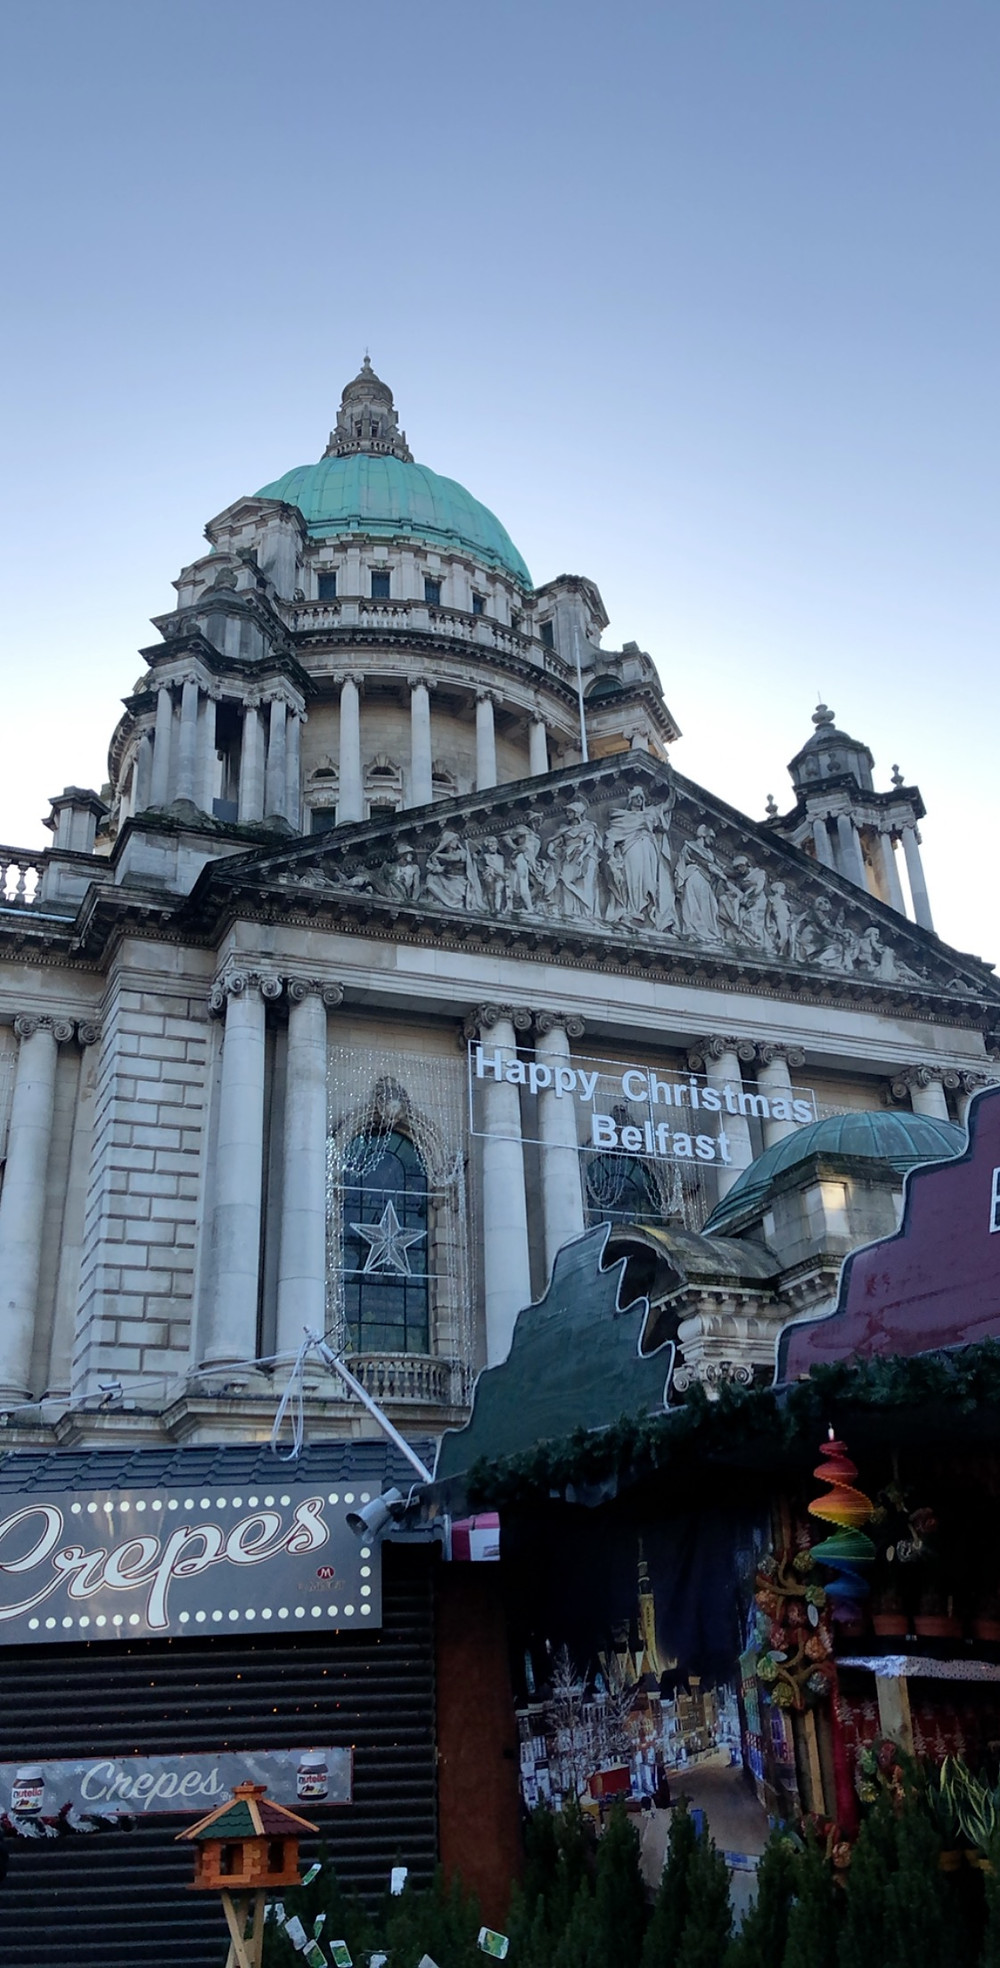 The Belfast City Hall decorated for the market